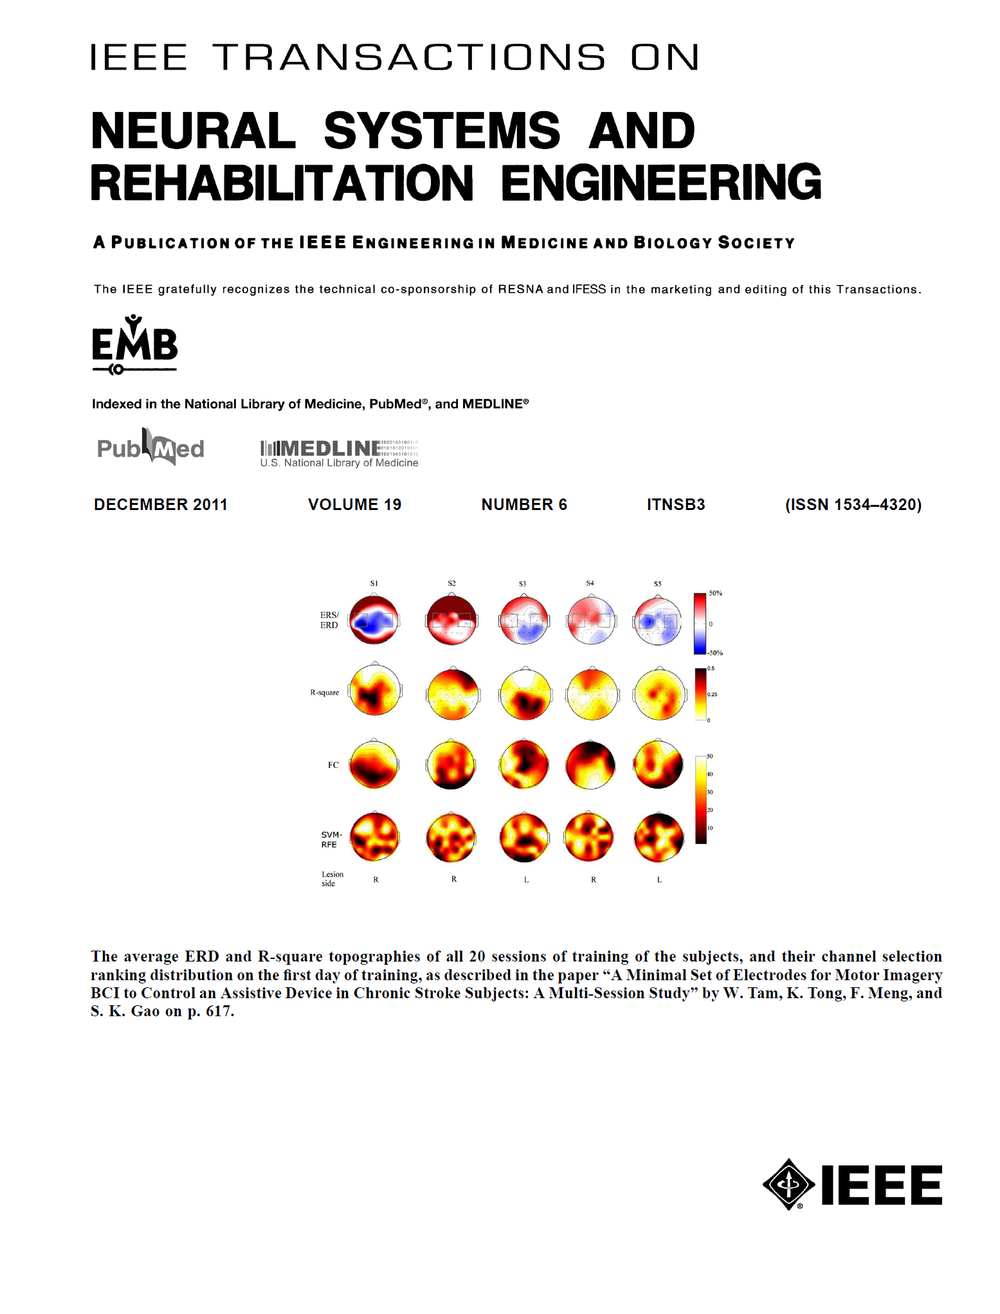 Mawase F, Bar-Haim S, Karniel A (2011) - Lack of predictive control in lifting series of virtual objects by individuals with diplegic cerebral palsyIEEE Transactions on Neural Systems and Rehabilitation Engineering 19:686–695